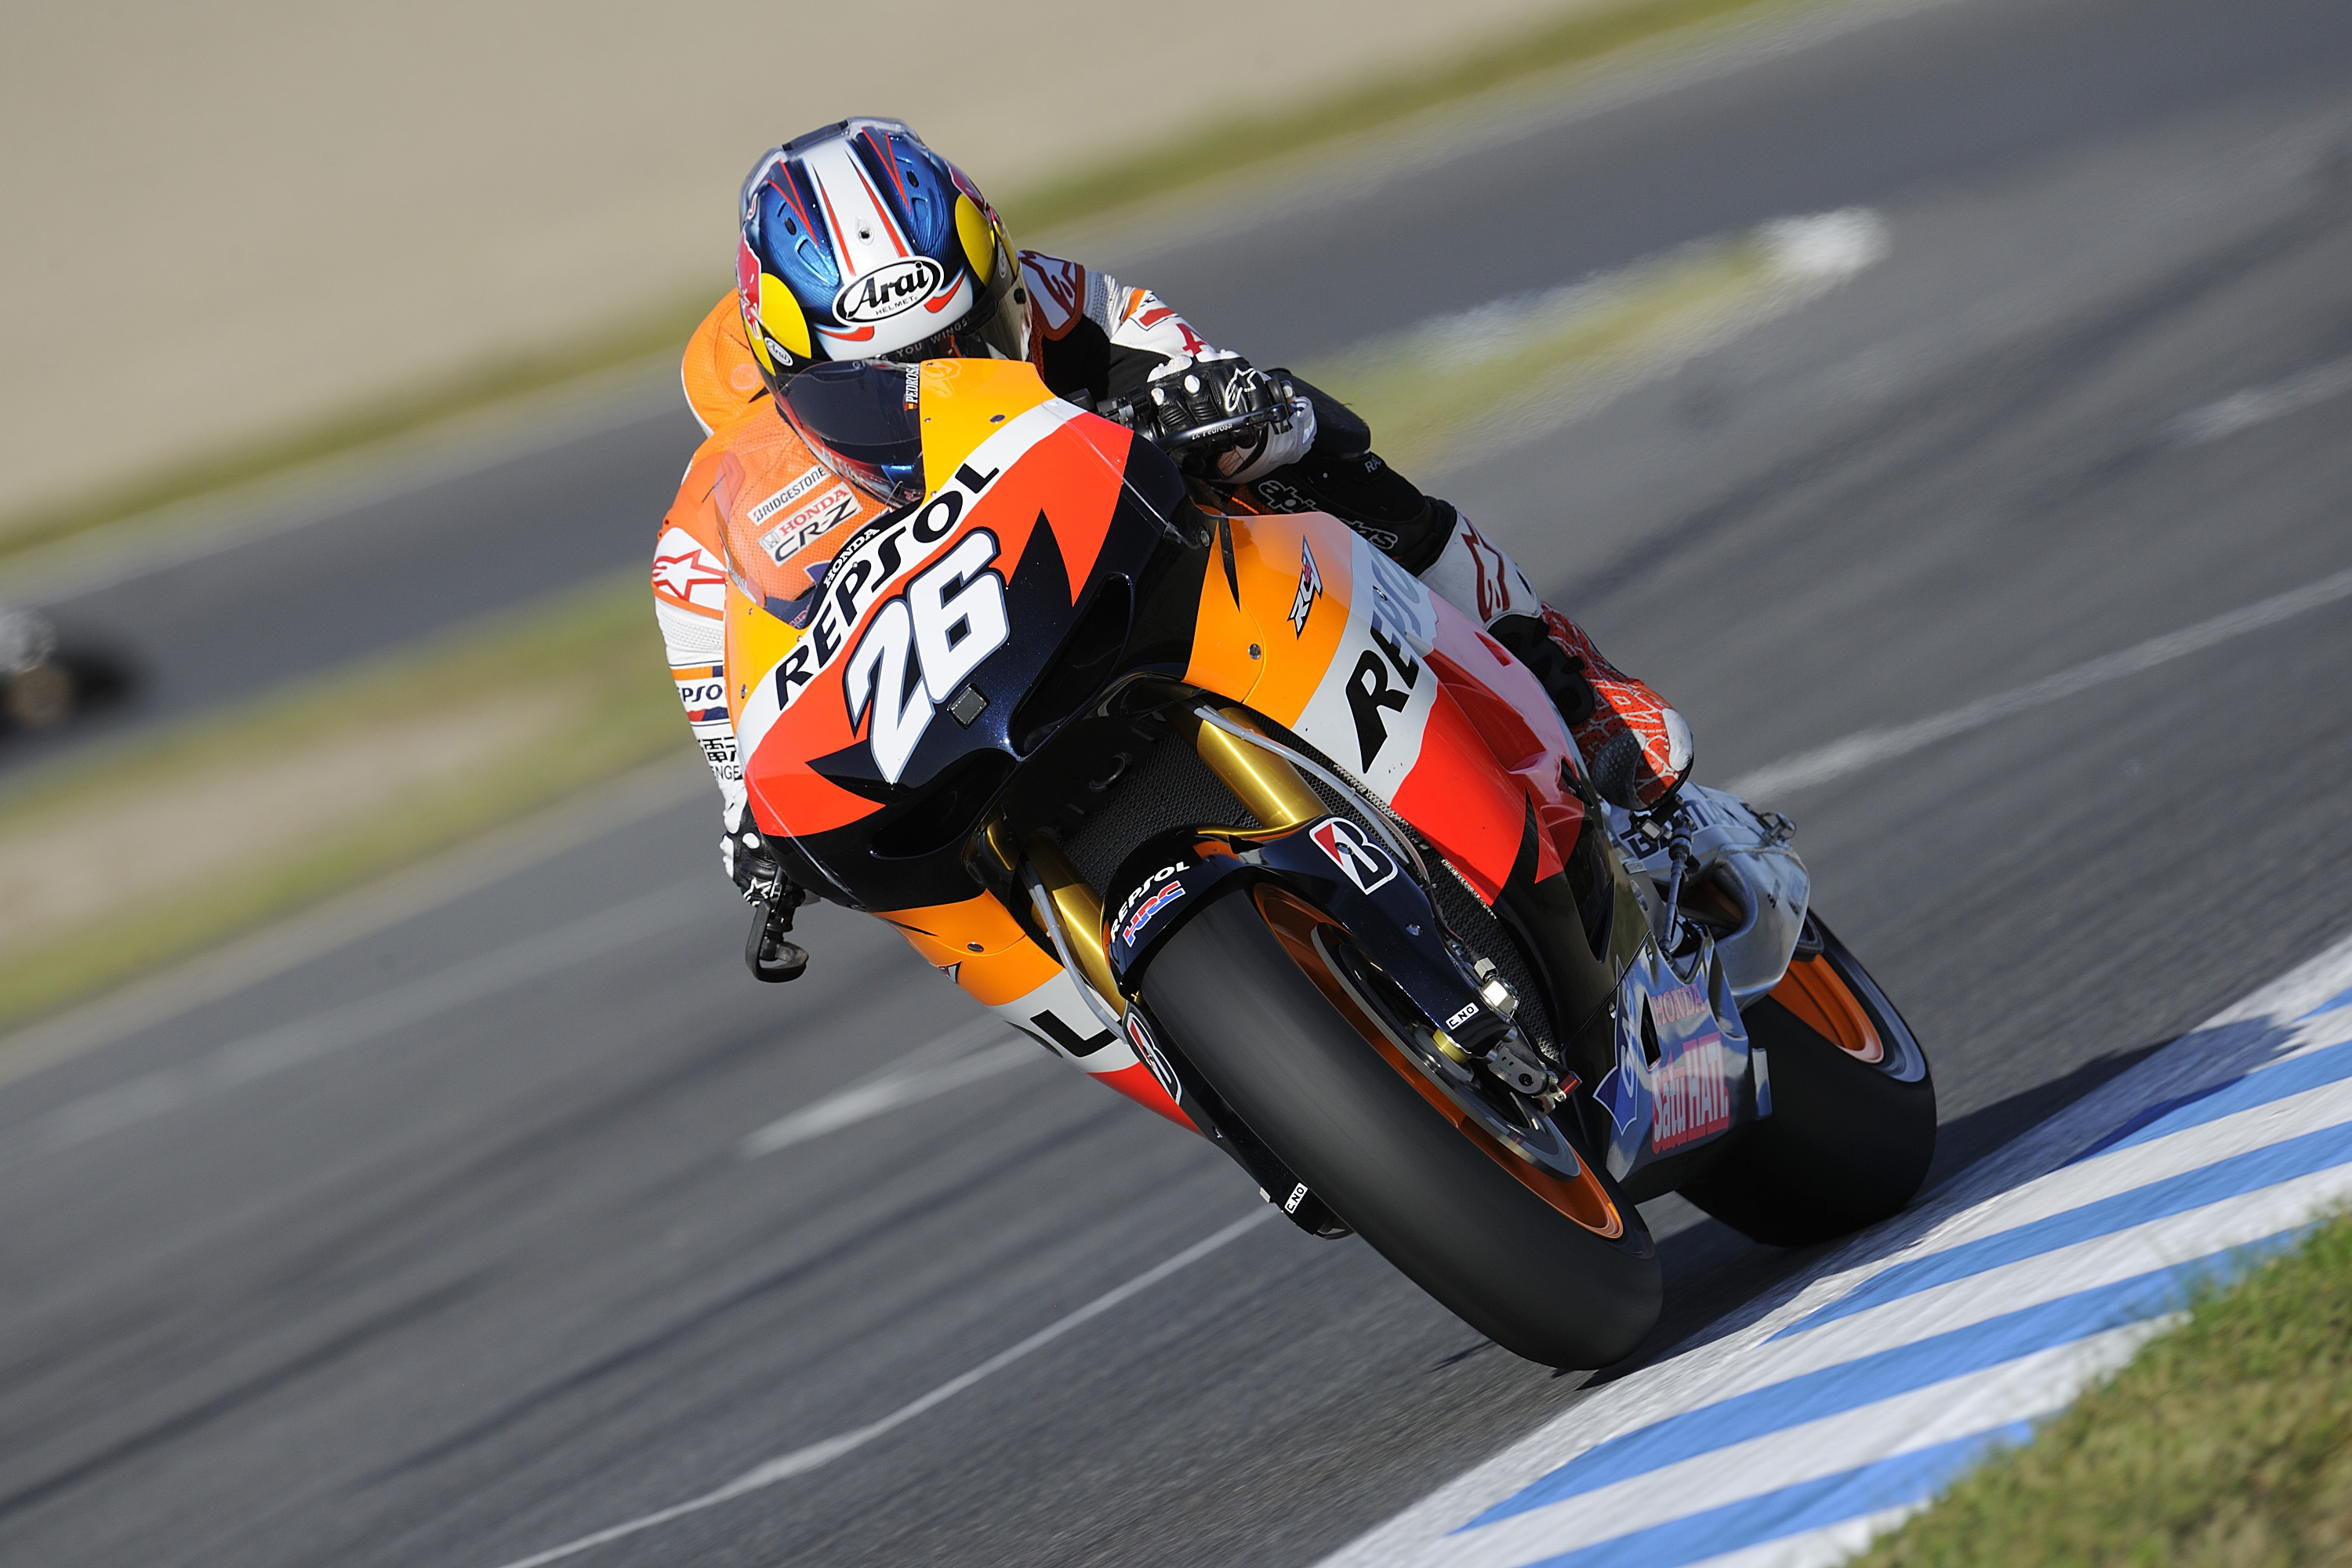 Pedrosa leads tightly packed field in Motegi practice